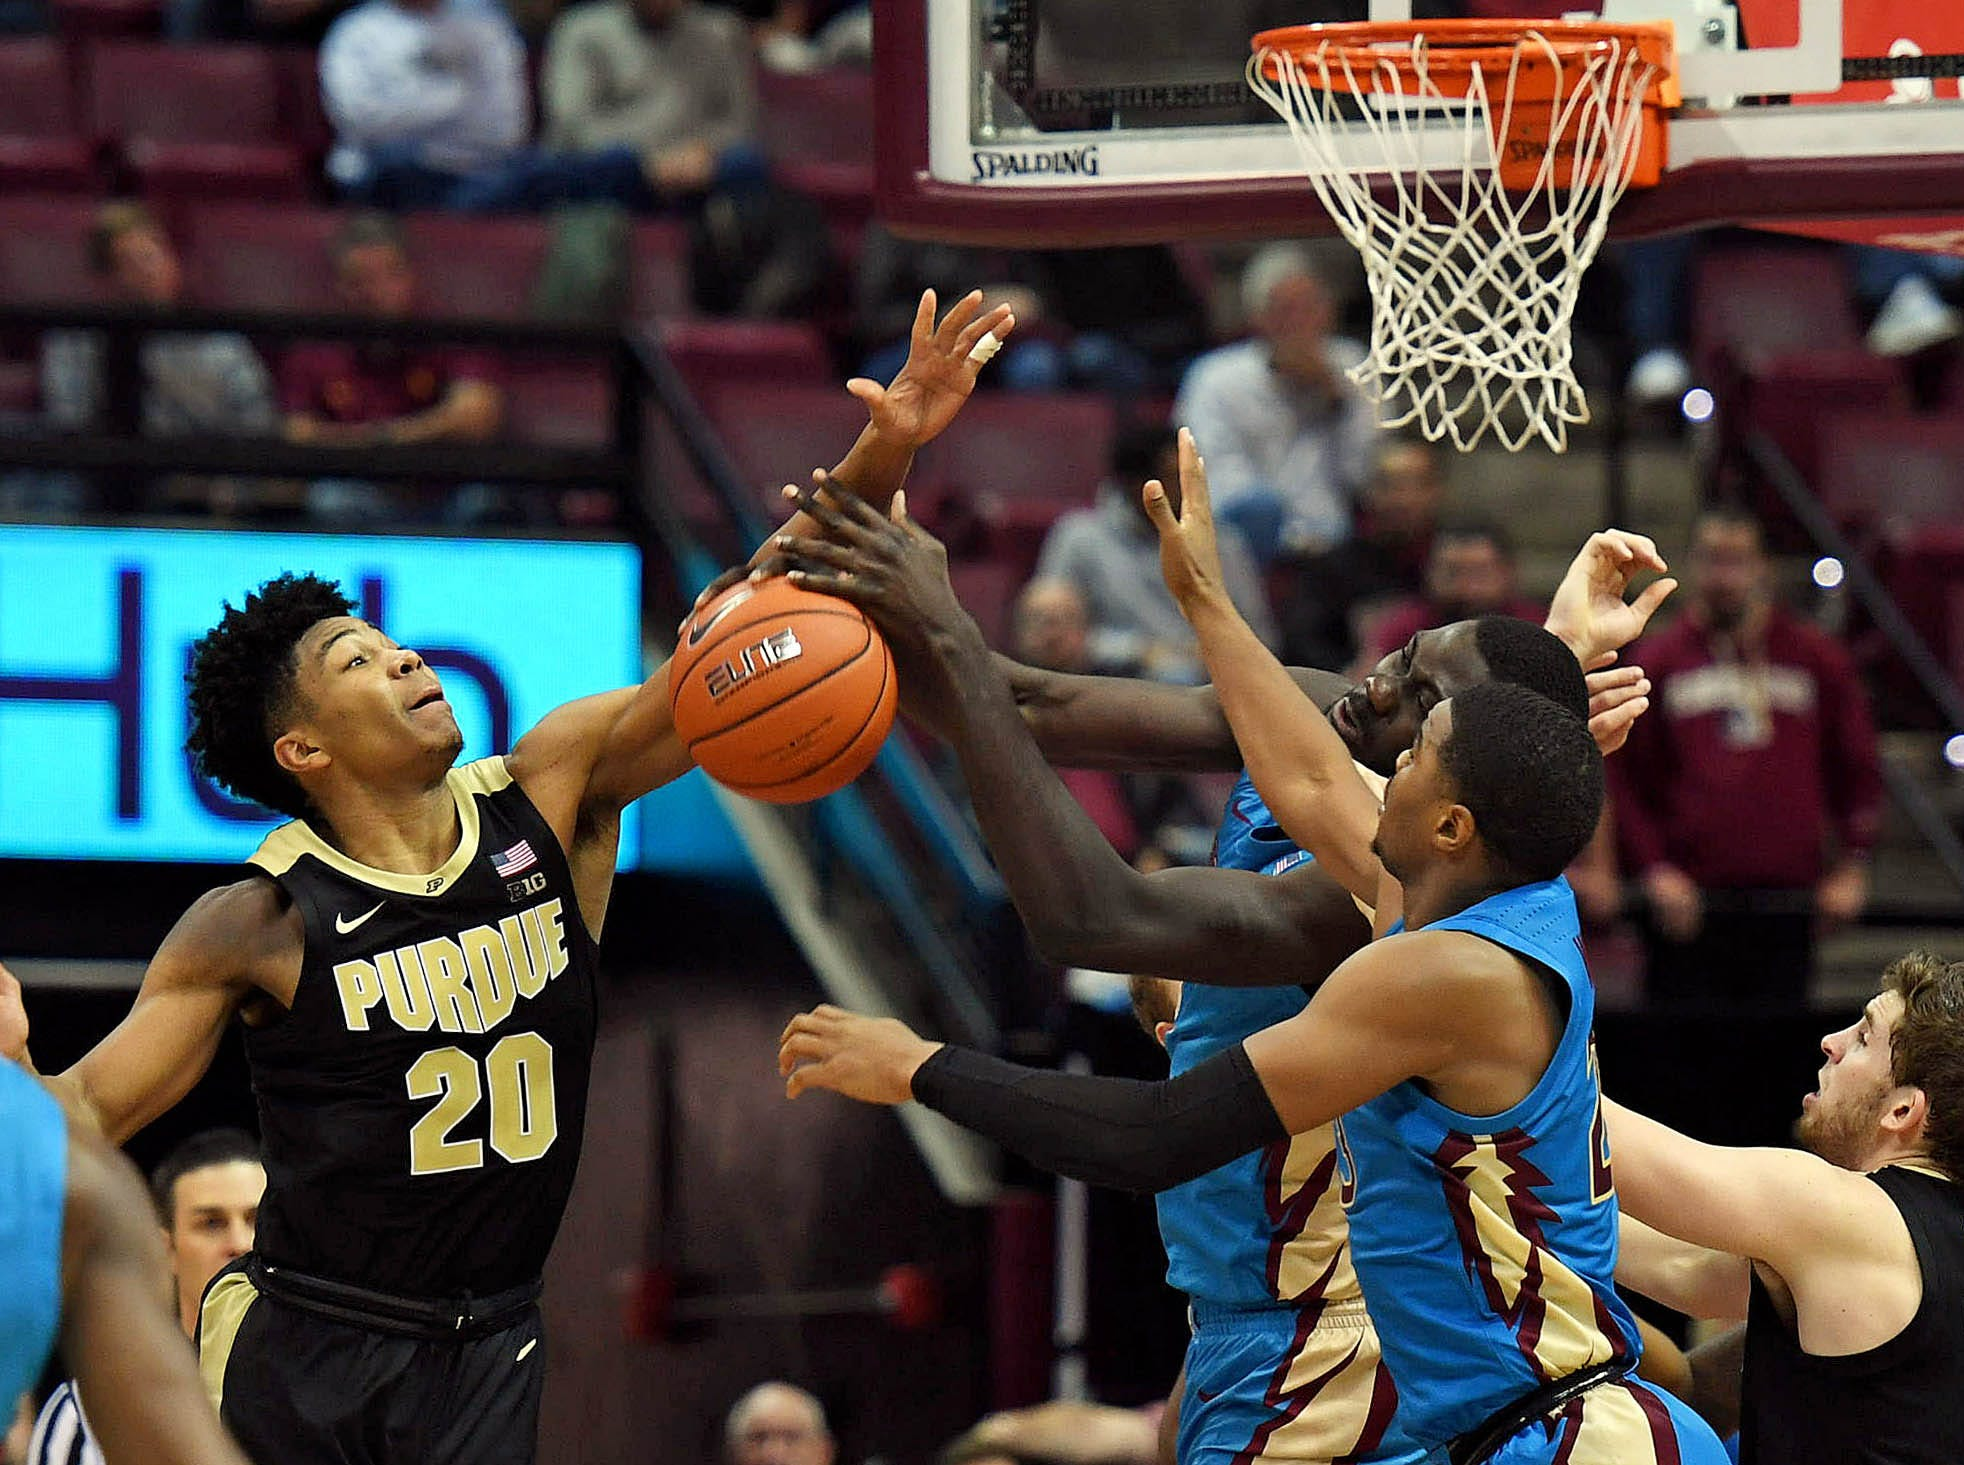 Nov 28, 2018; Tallahassee, FL, USA; Purdue Boilermakers guard Nojel Eastern (20) defends the basket as Florida State Seminoles center Christ Koumadje (21) during the second half at Donald L. Tucker Center. Mandatory Credit: Melina Myers-USA TODAY Sports